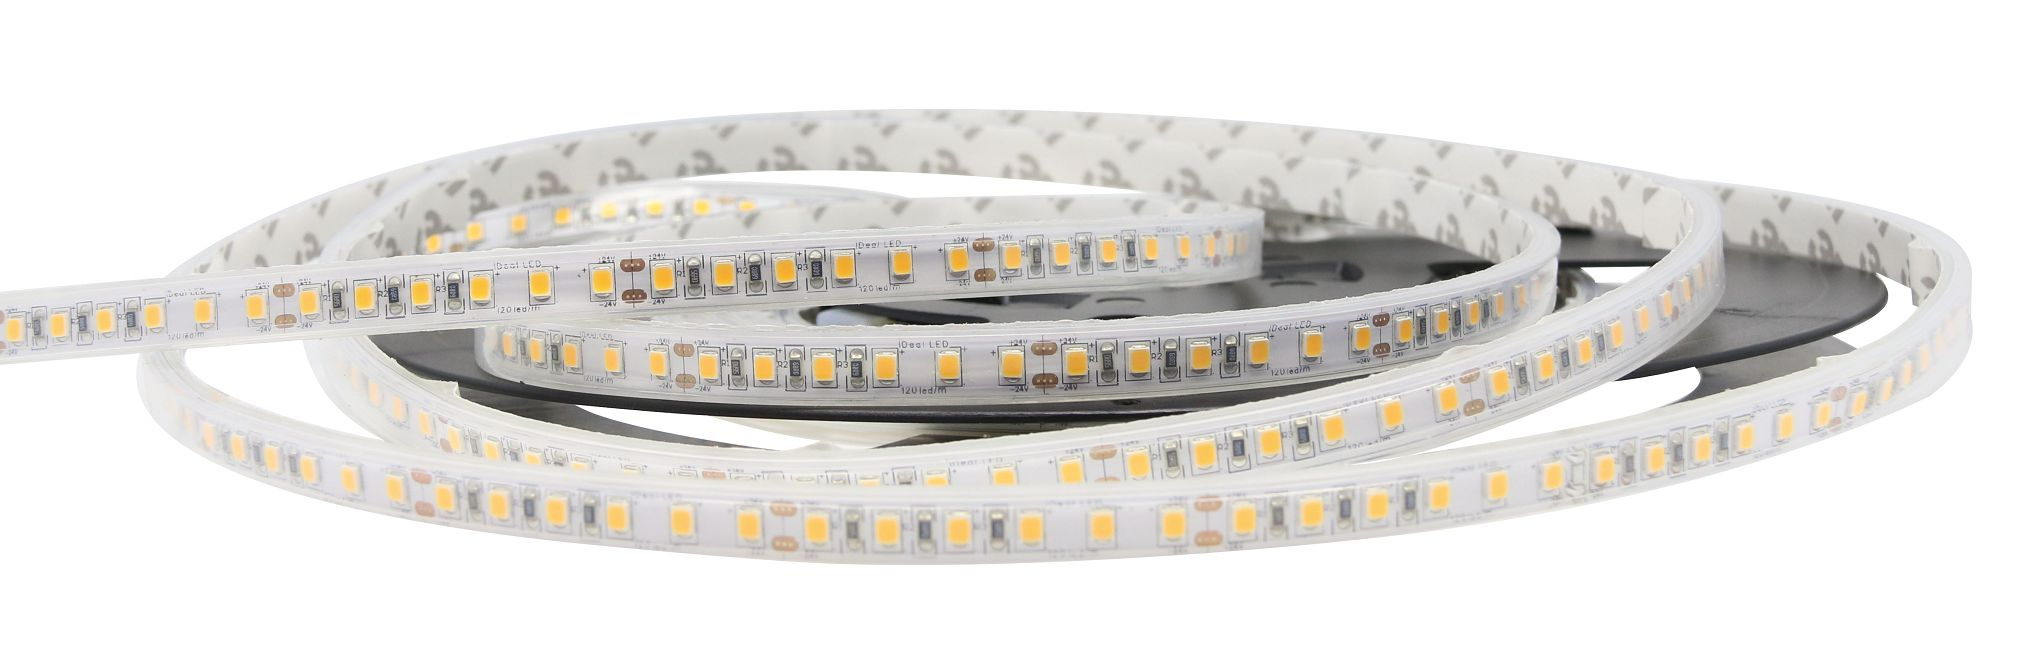 LED Striplight S23120-24-WP-14.4w